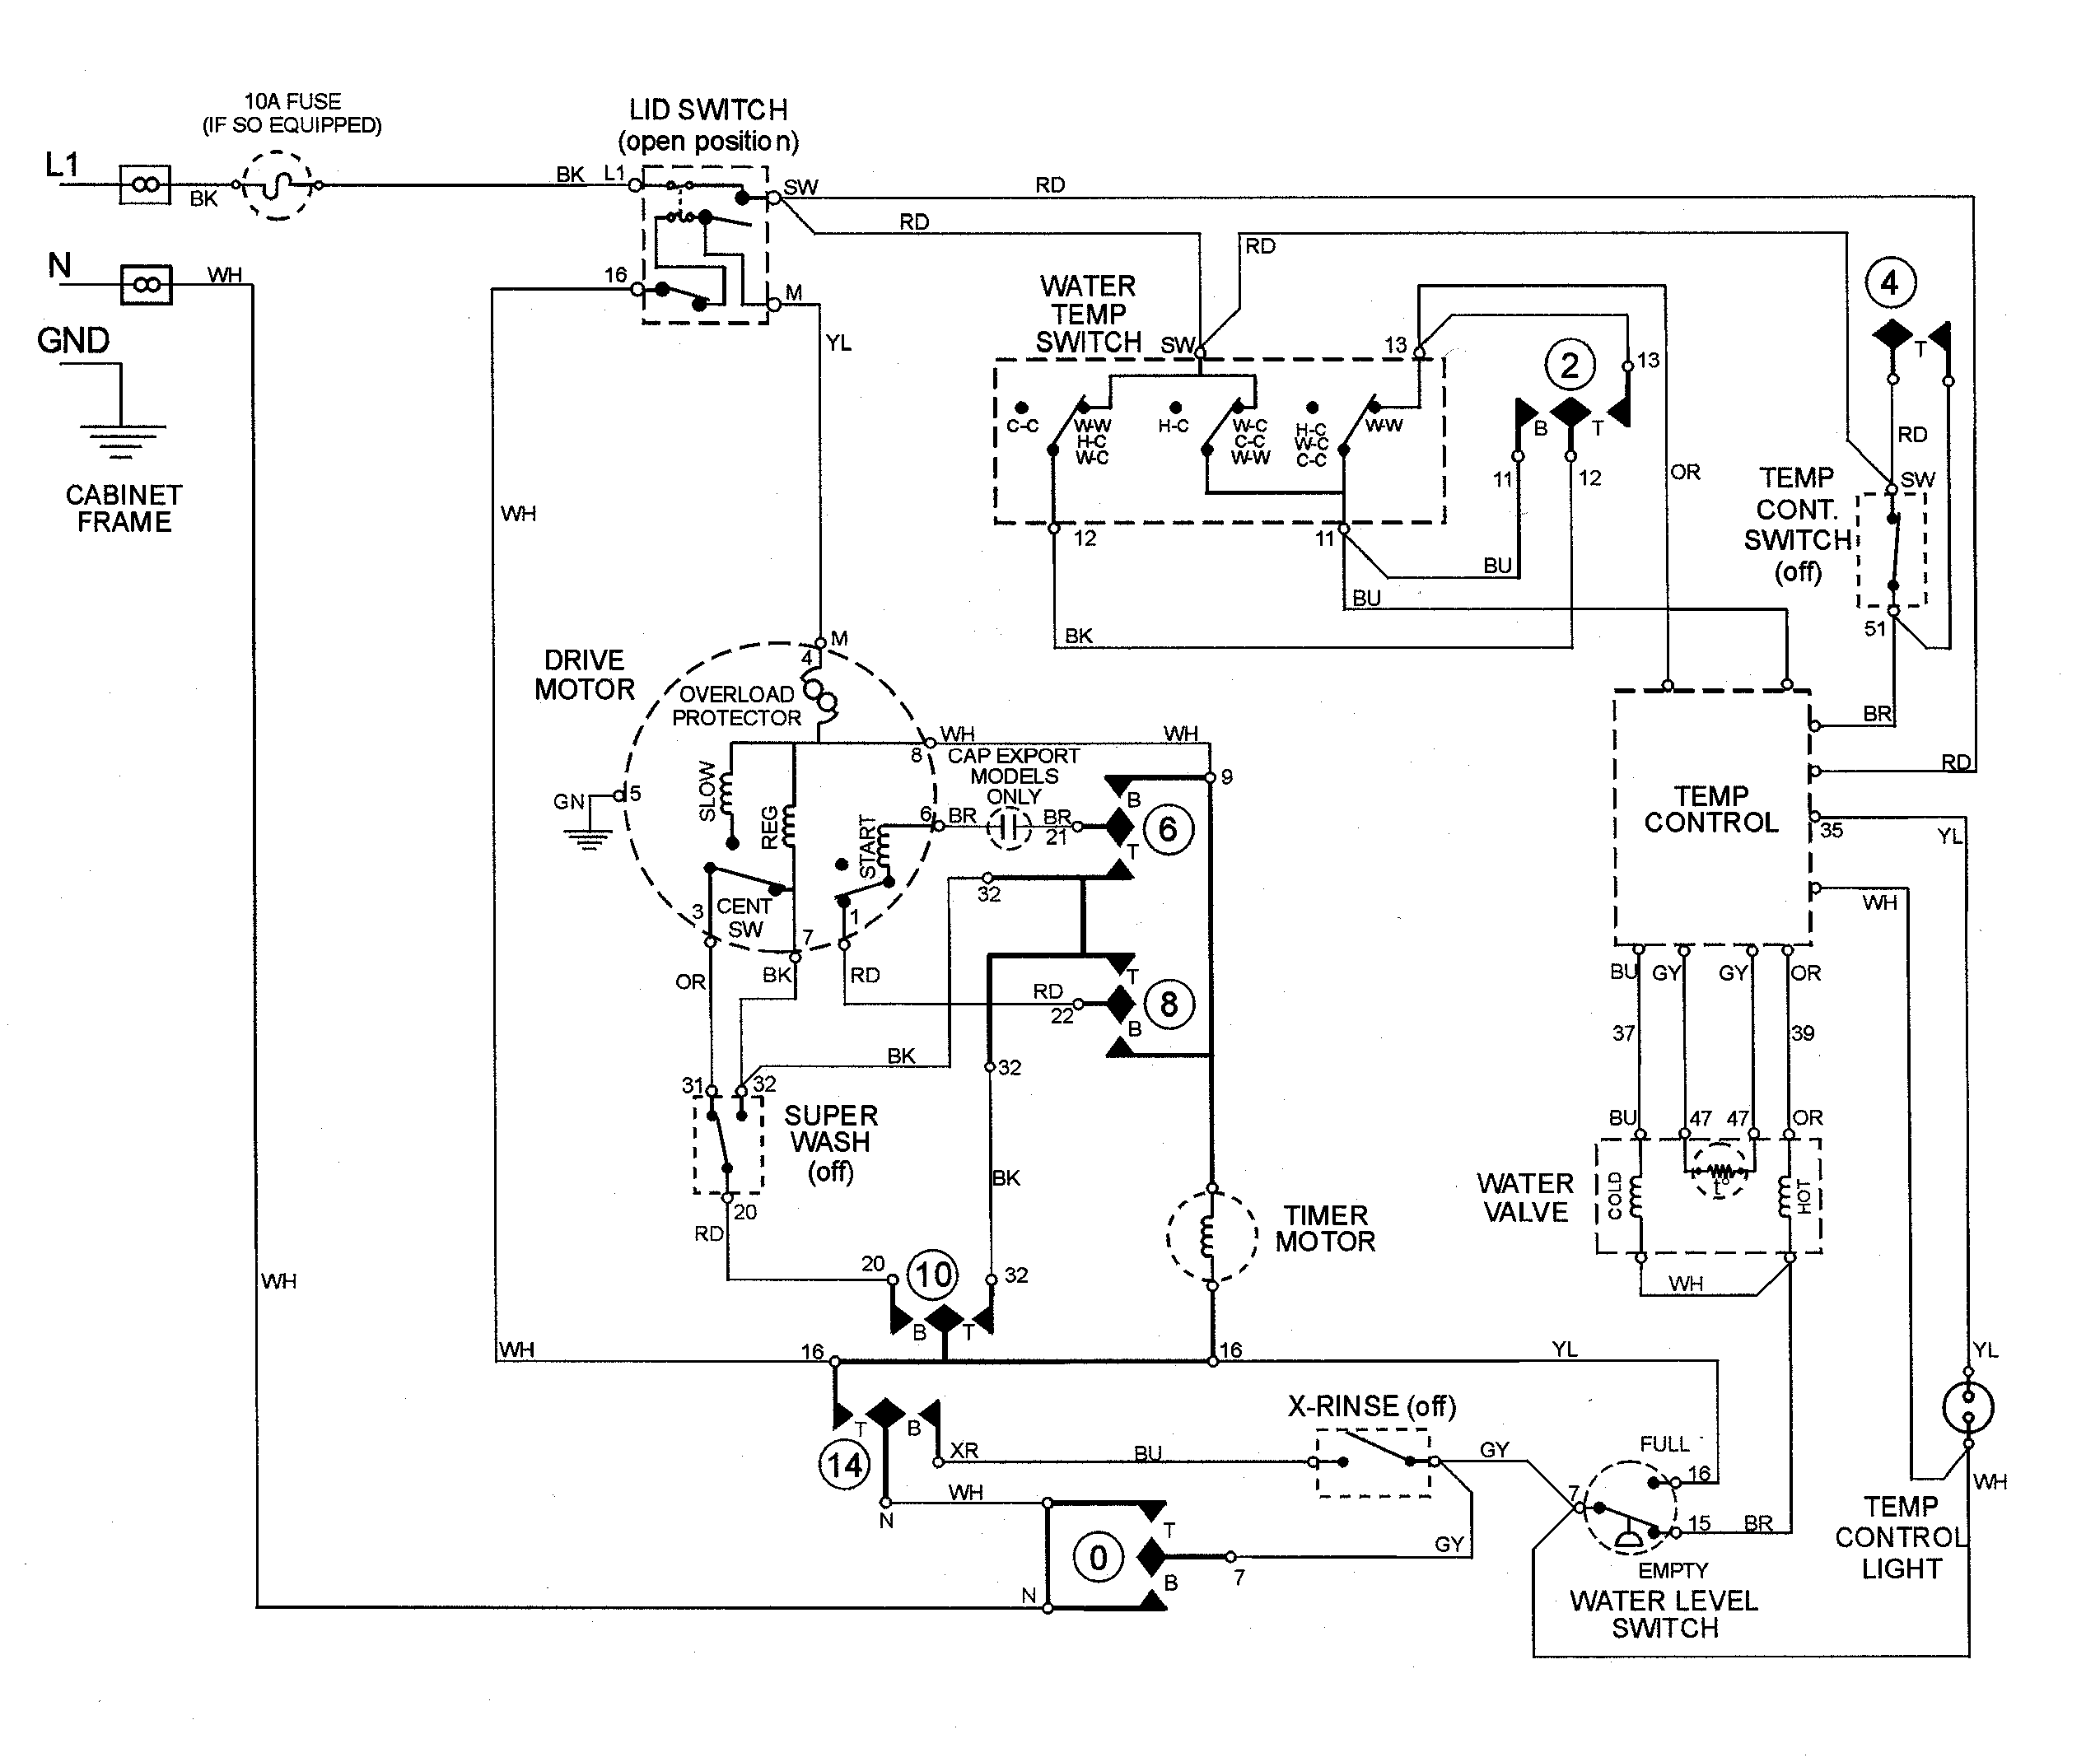 dbfe84c1294a289a6a6d42ba64109ee4 Washing Machine Wiring Diagram And Schematics on washing machine motor wiring diagram, washing machine function table, washing machine function chart,